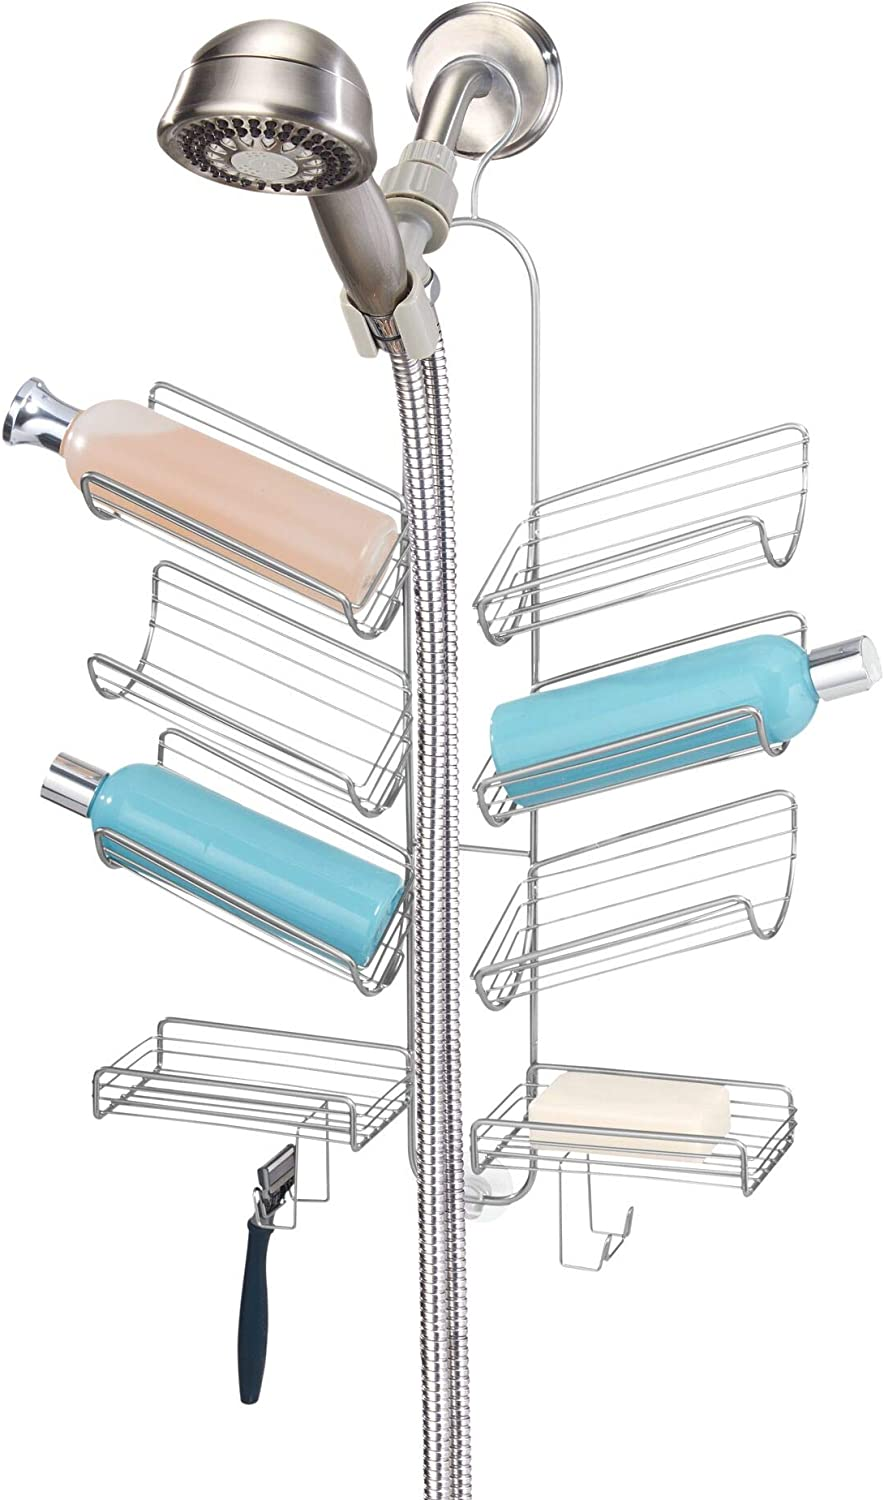 iDesign Verona Metal Wire Hanging Shower Caddy for Hand Held Shower Heads, Space for Shampoo, Conditioner, and Soap with Hooks for Razors, Towels, and More, 14